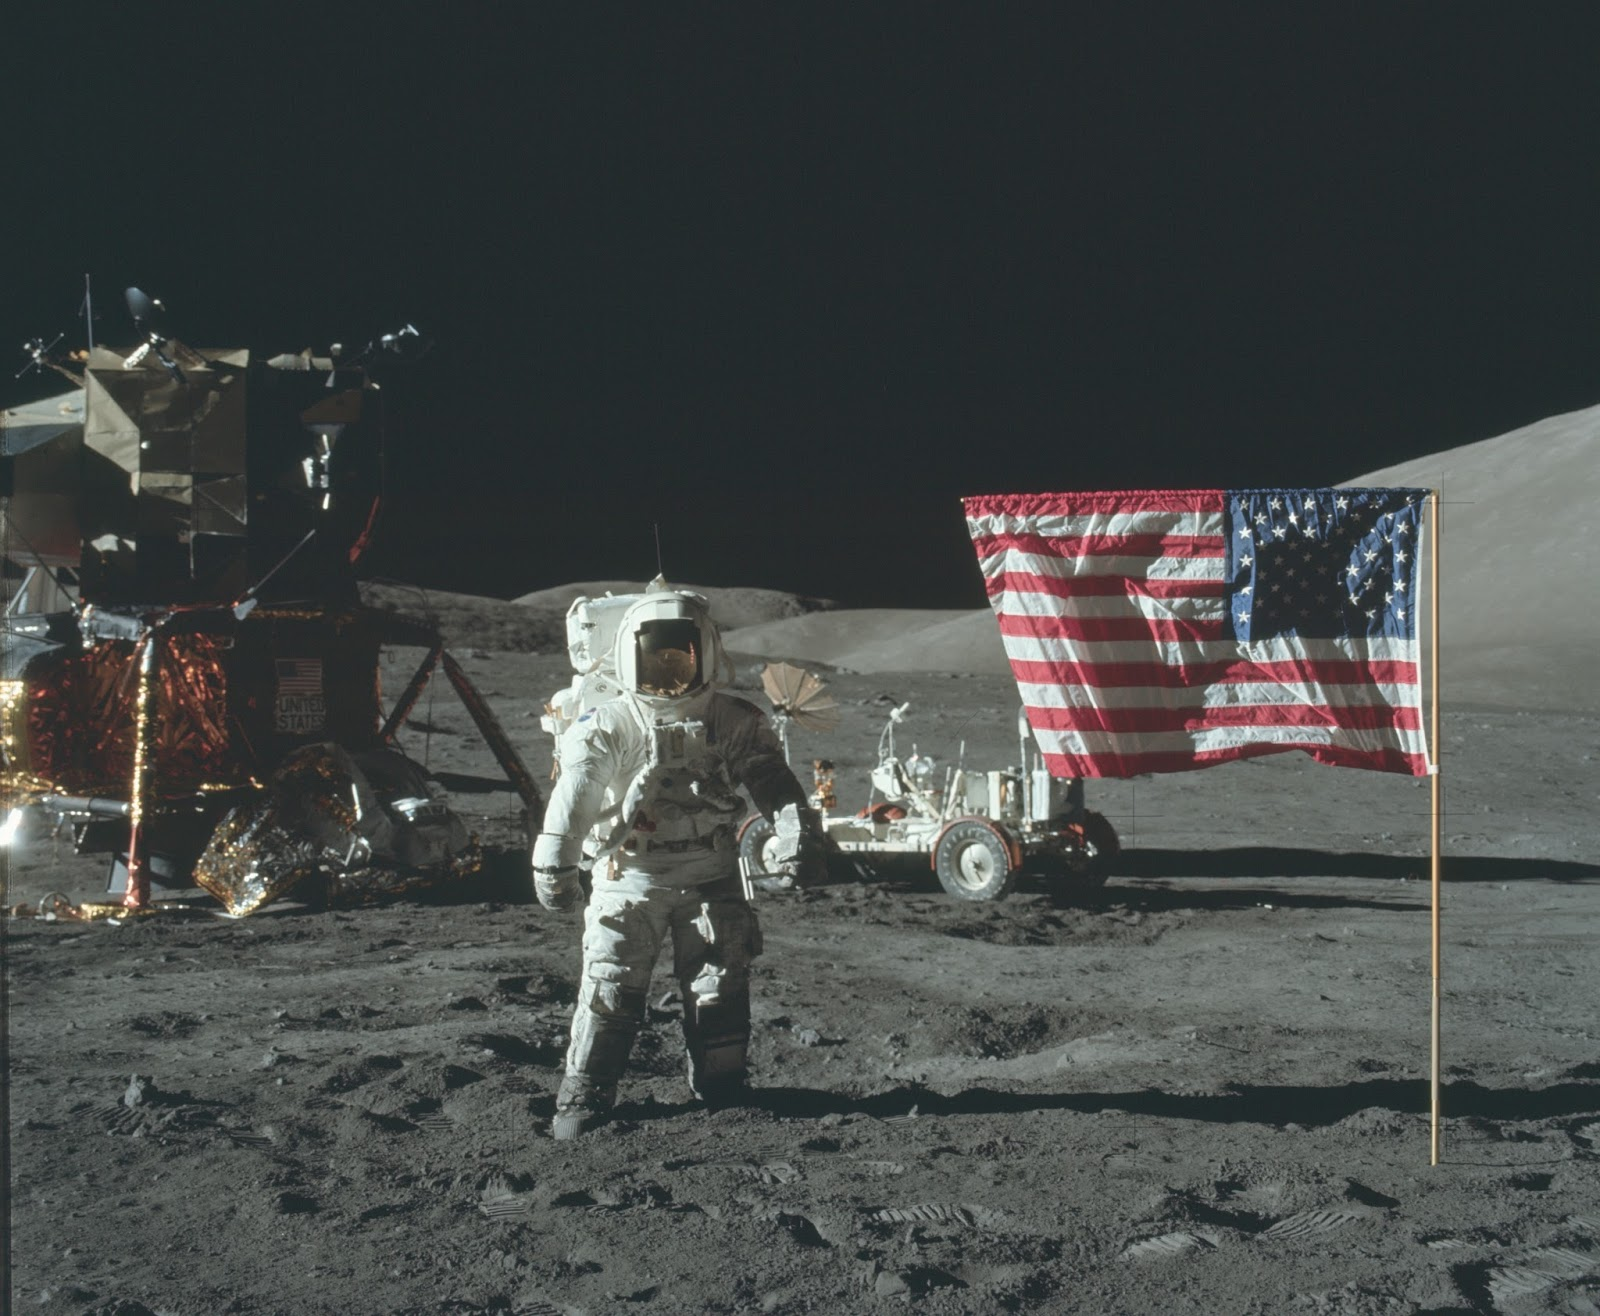 Image from Apollo !7 moon